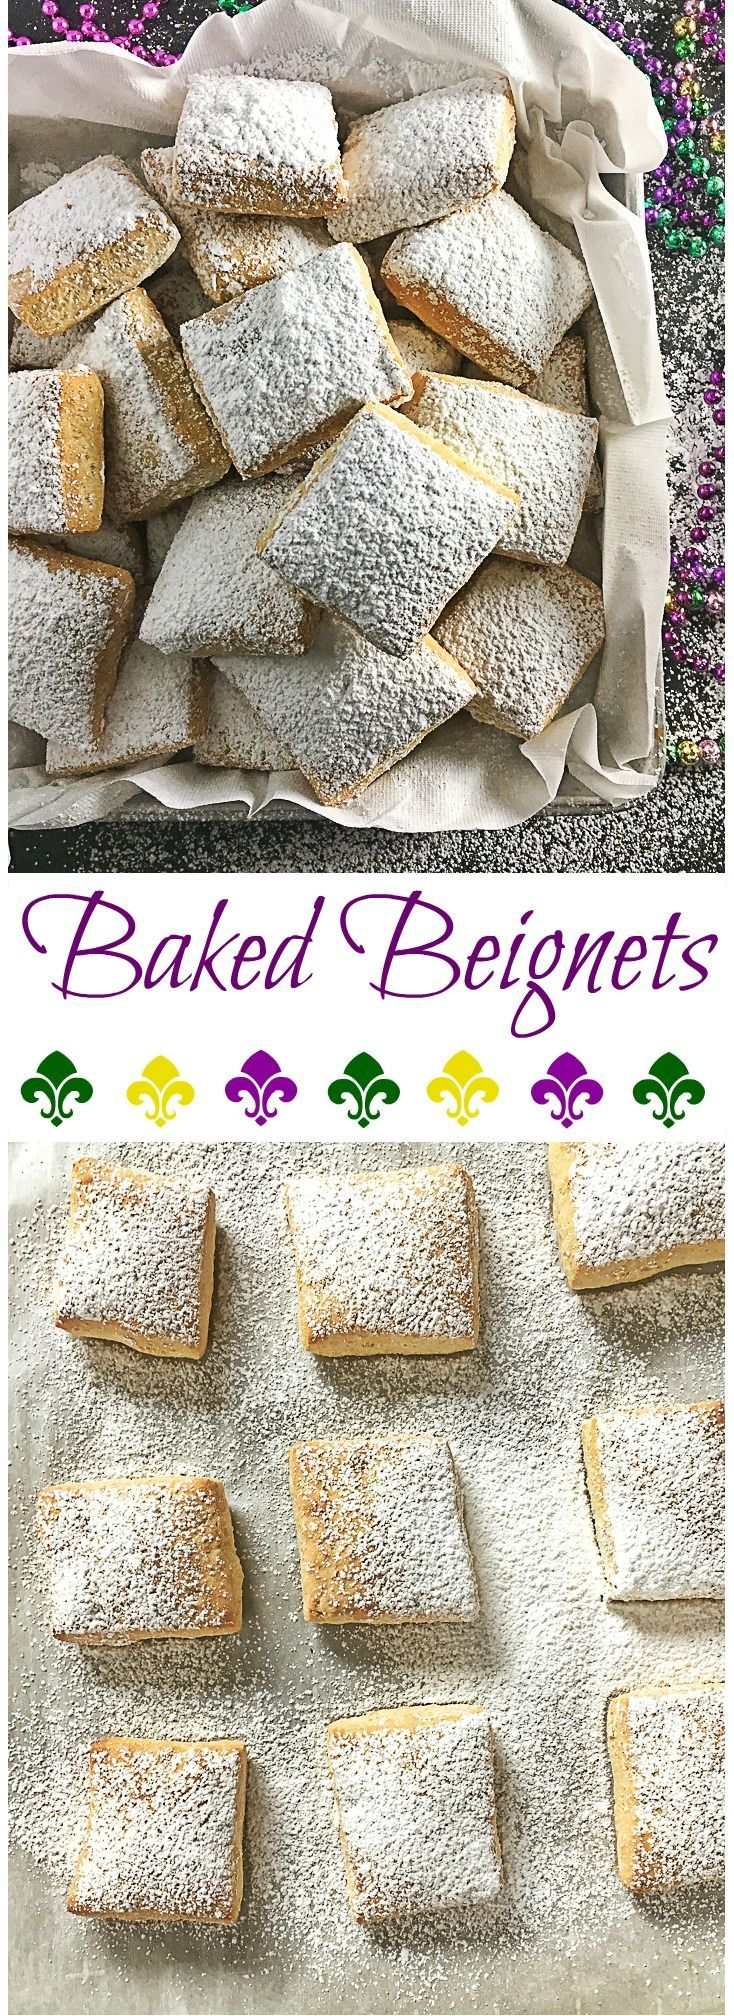 Try this healthier version of a Mardi Gras classic: Baked Beignets! Recipe at http://Teaspoonofspice.com